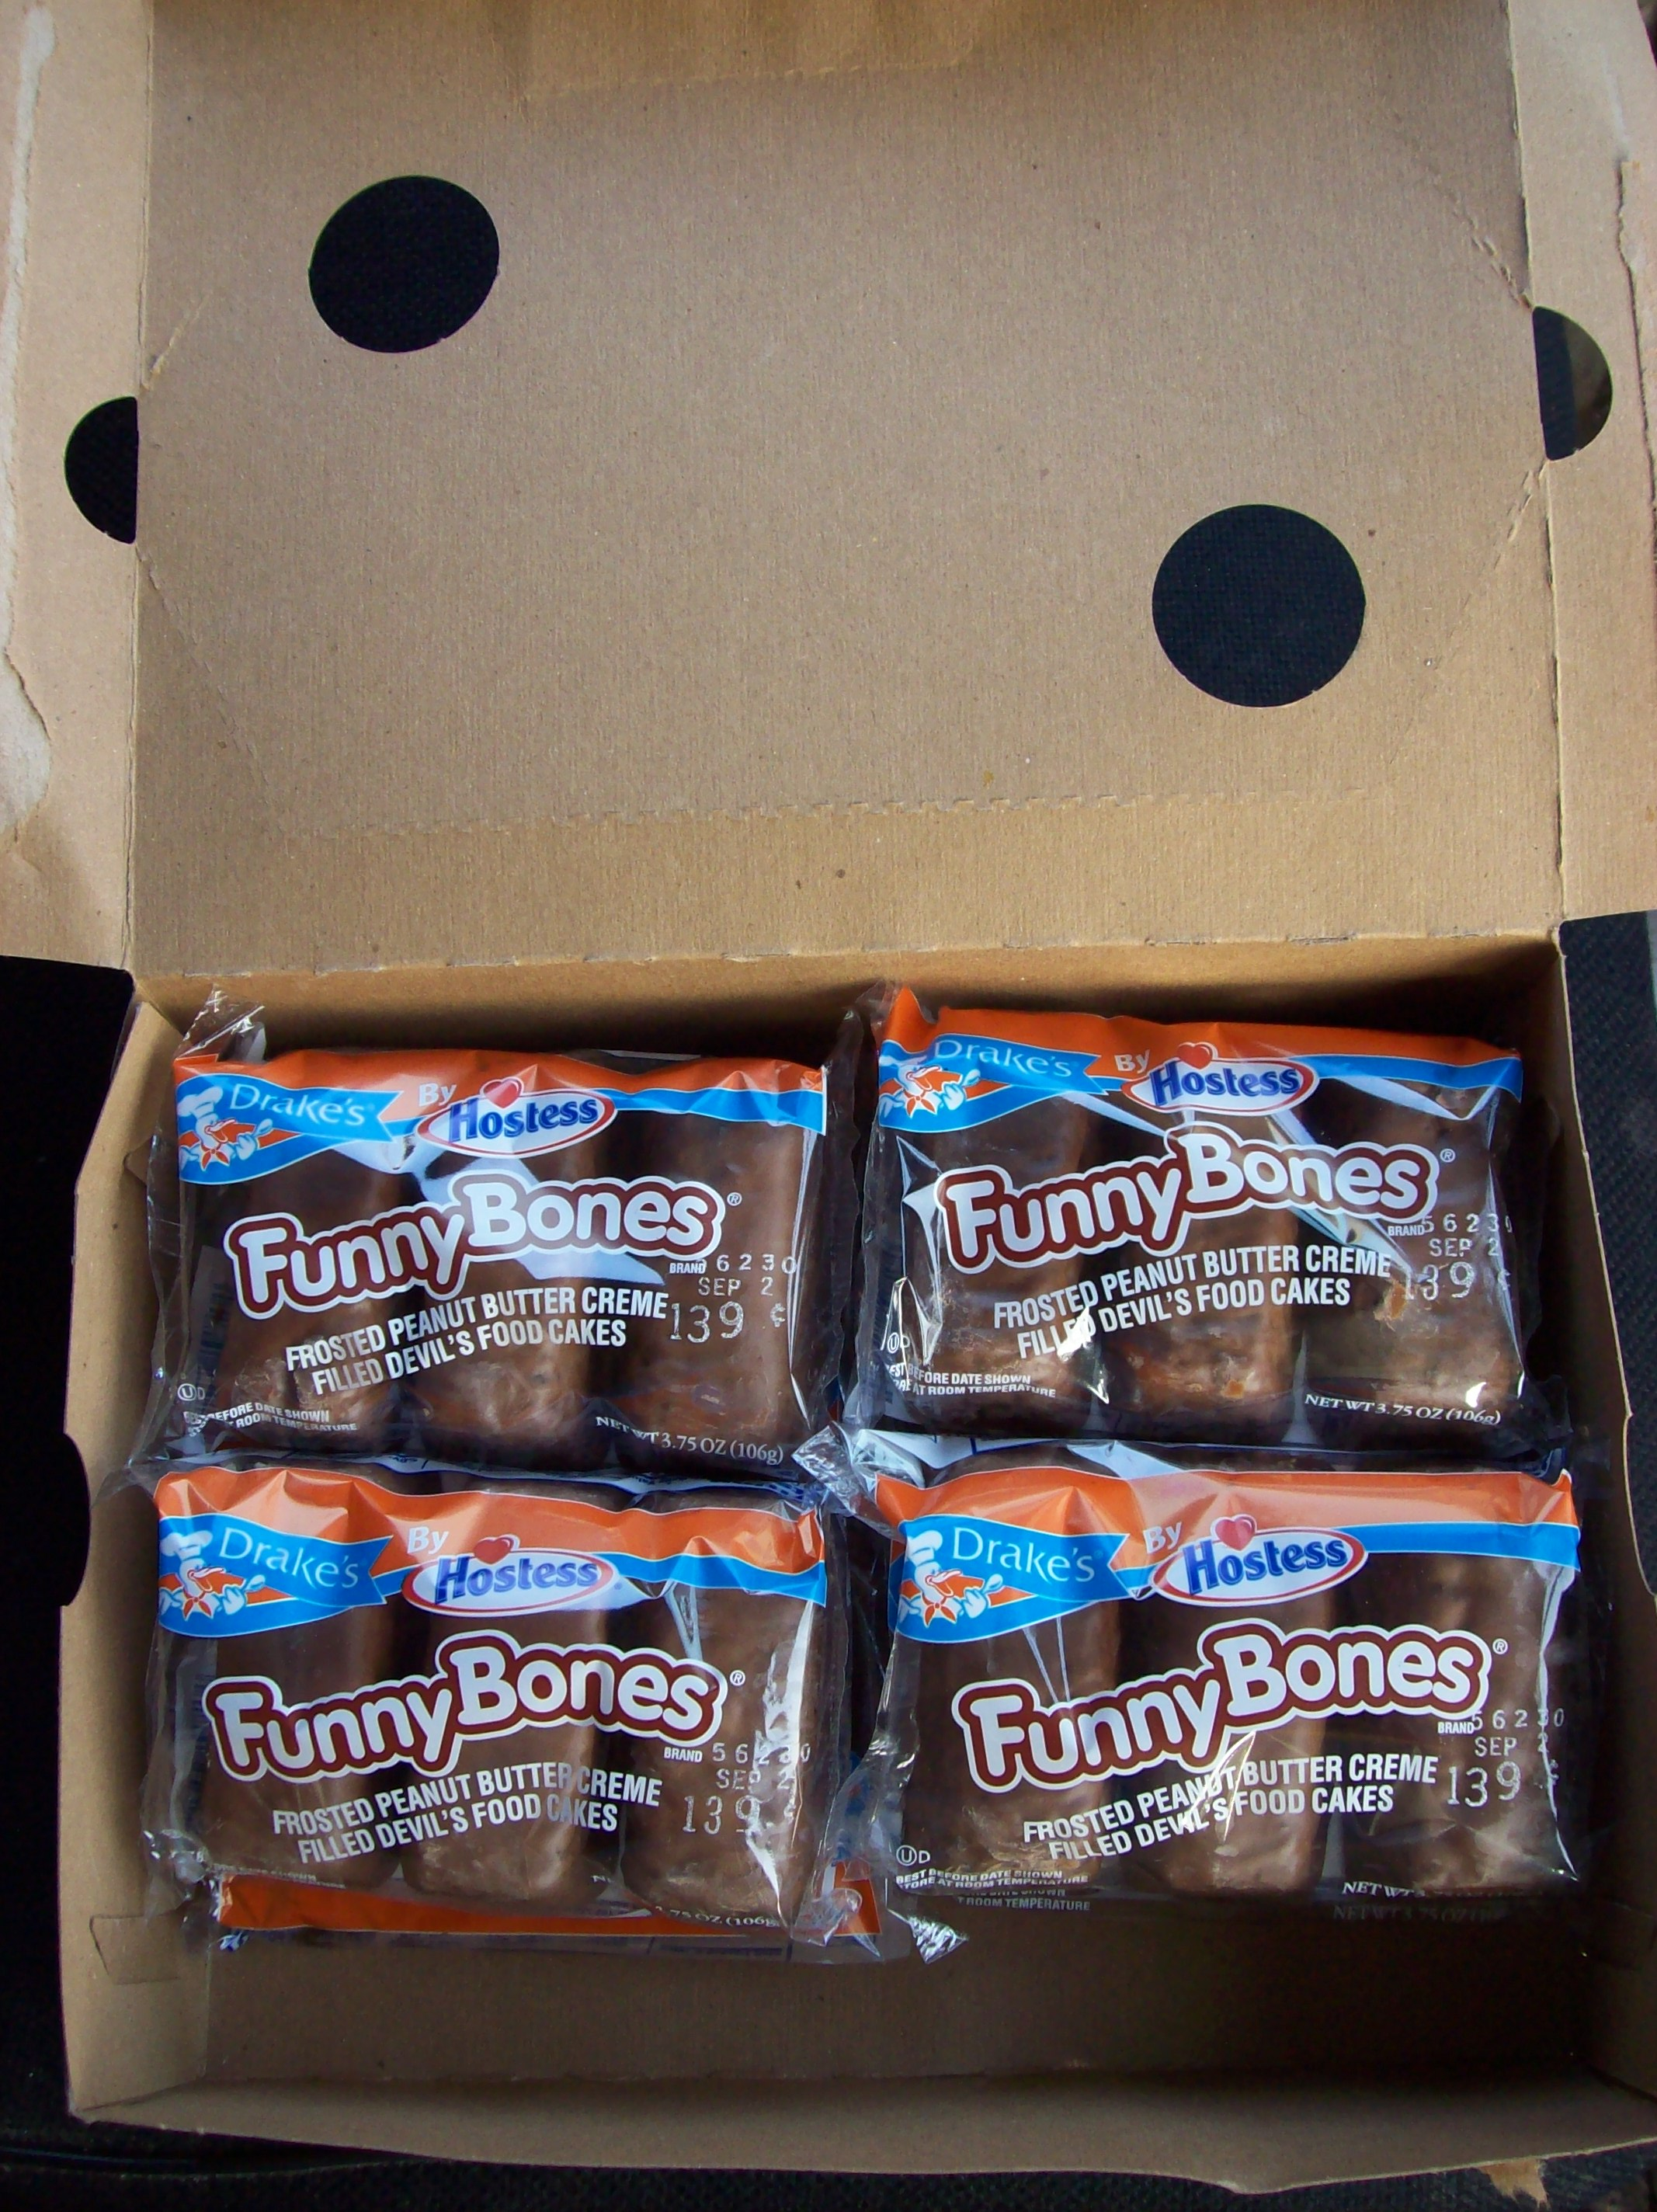 Funny Bones the big size box lots to eat